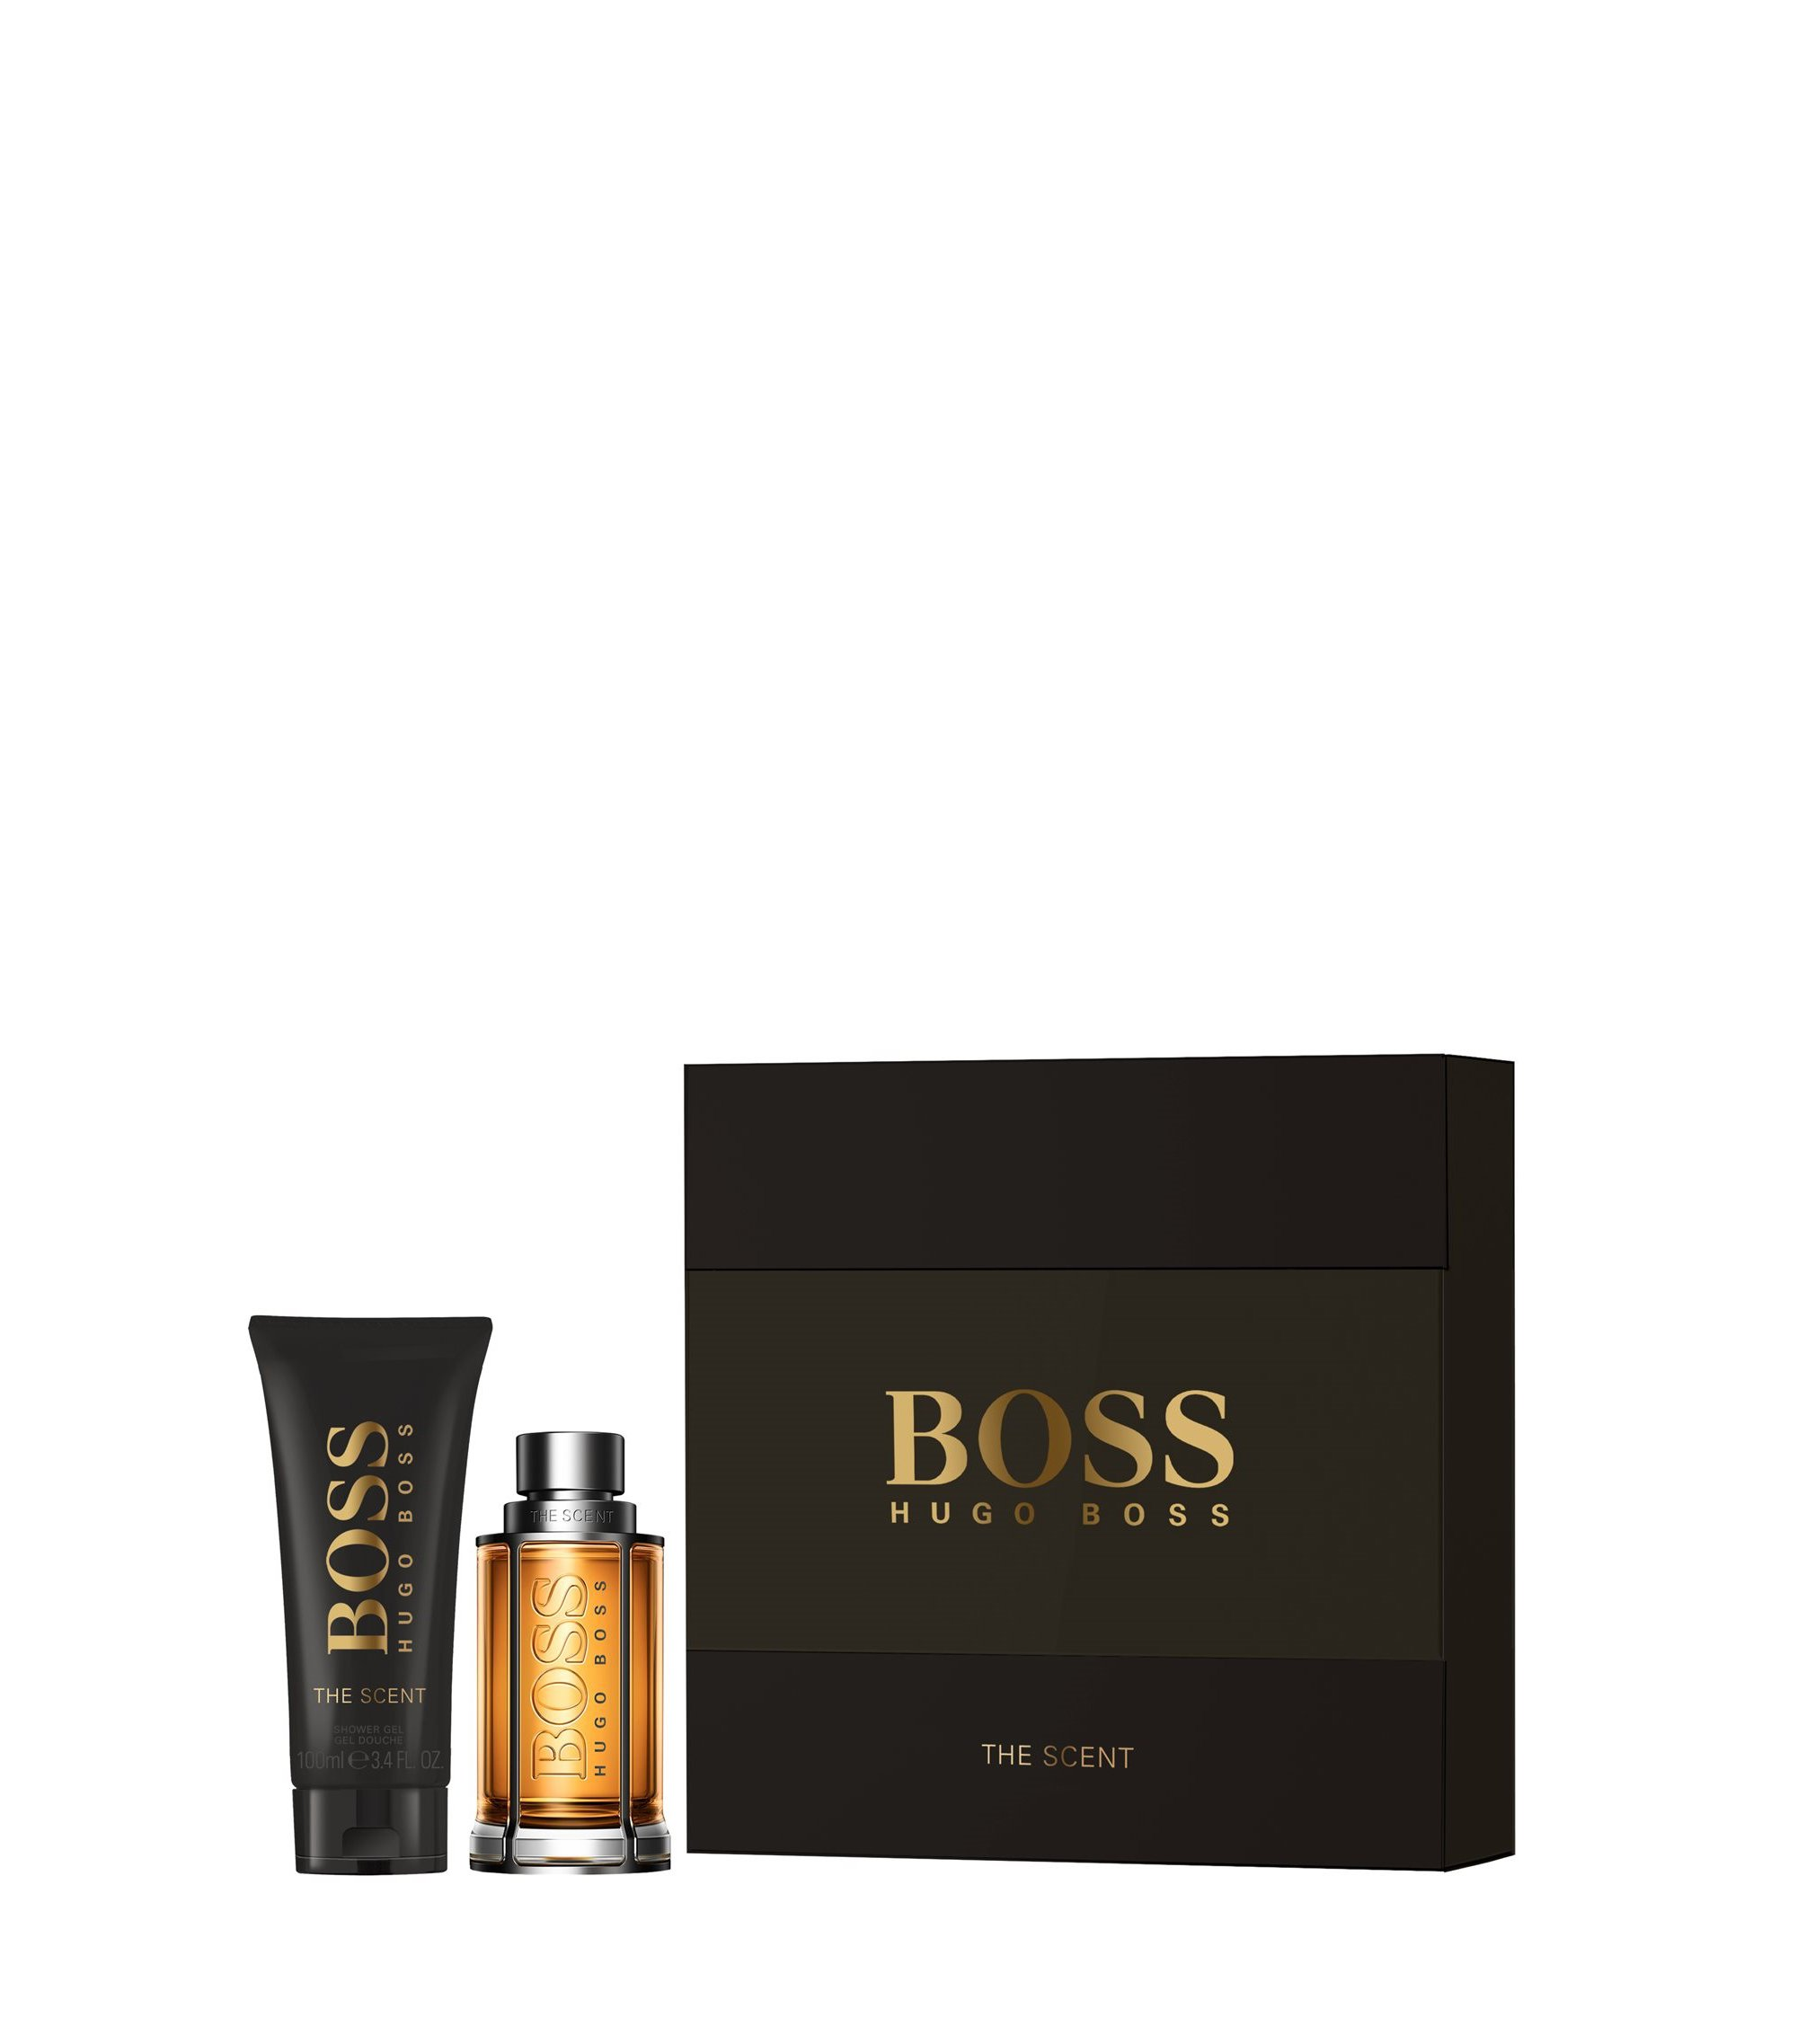 BOSS The Scent fragrance gift set, Assorted-Pre-Pack